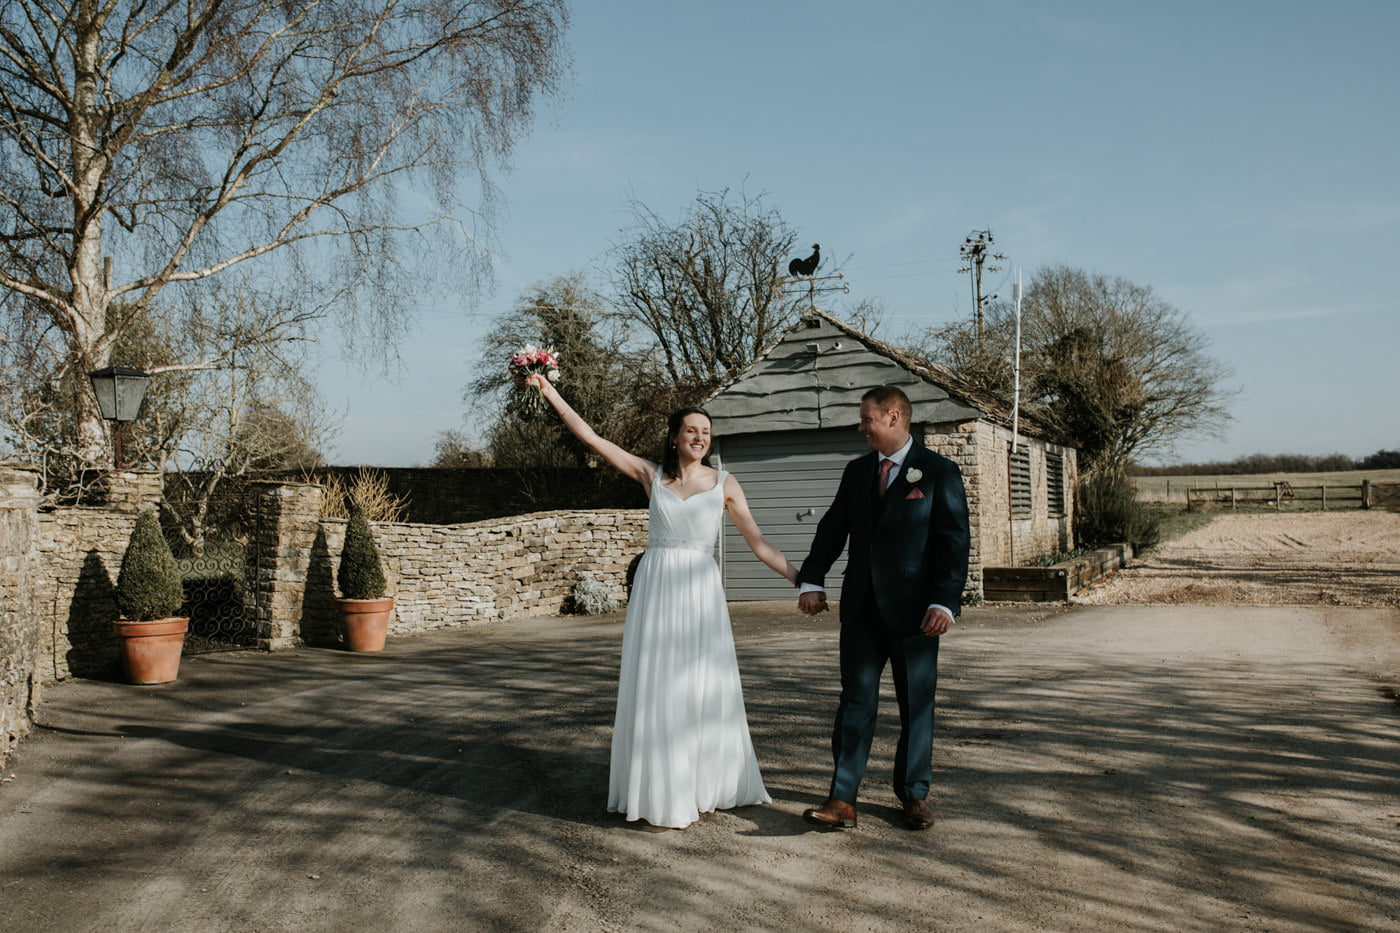 Ruth and Ben, Winkworth Farm, Wiltshire 22